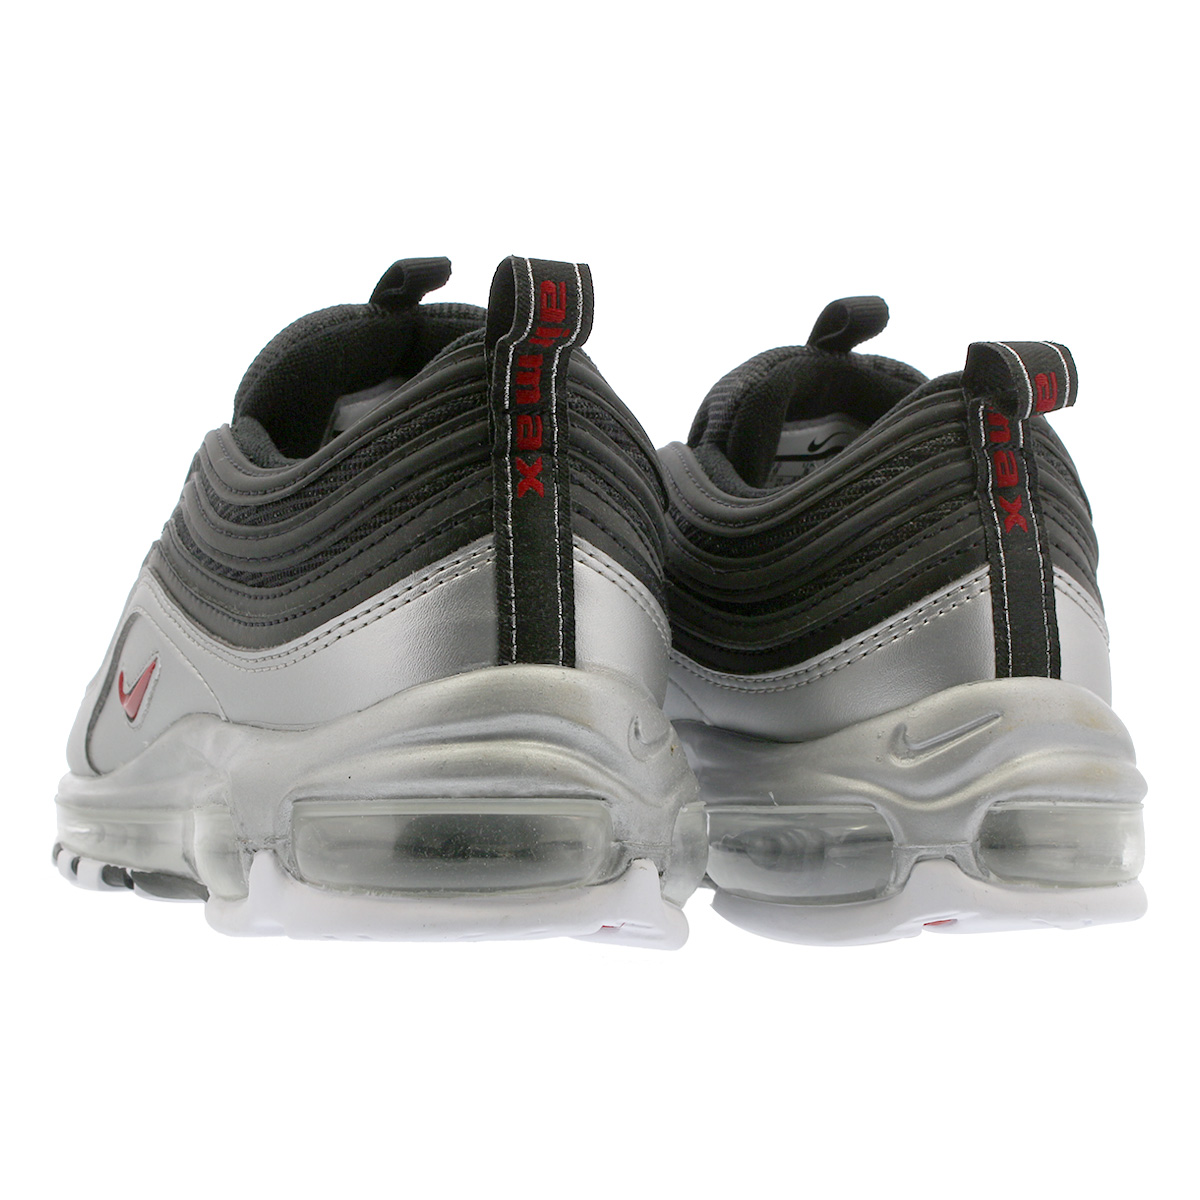 94725b357fc NIKE AIR MAX 97 QS Kie Ney AMAX 97 QS BLACK VARSITY RED METALLIC SILVER  WHITE at5458-001